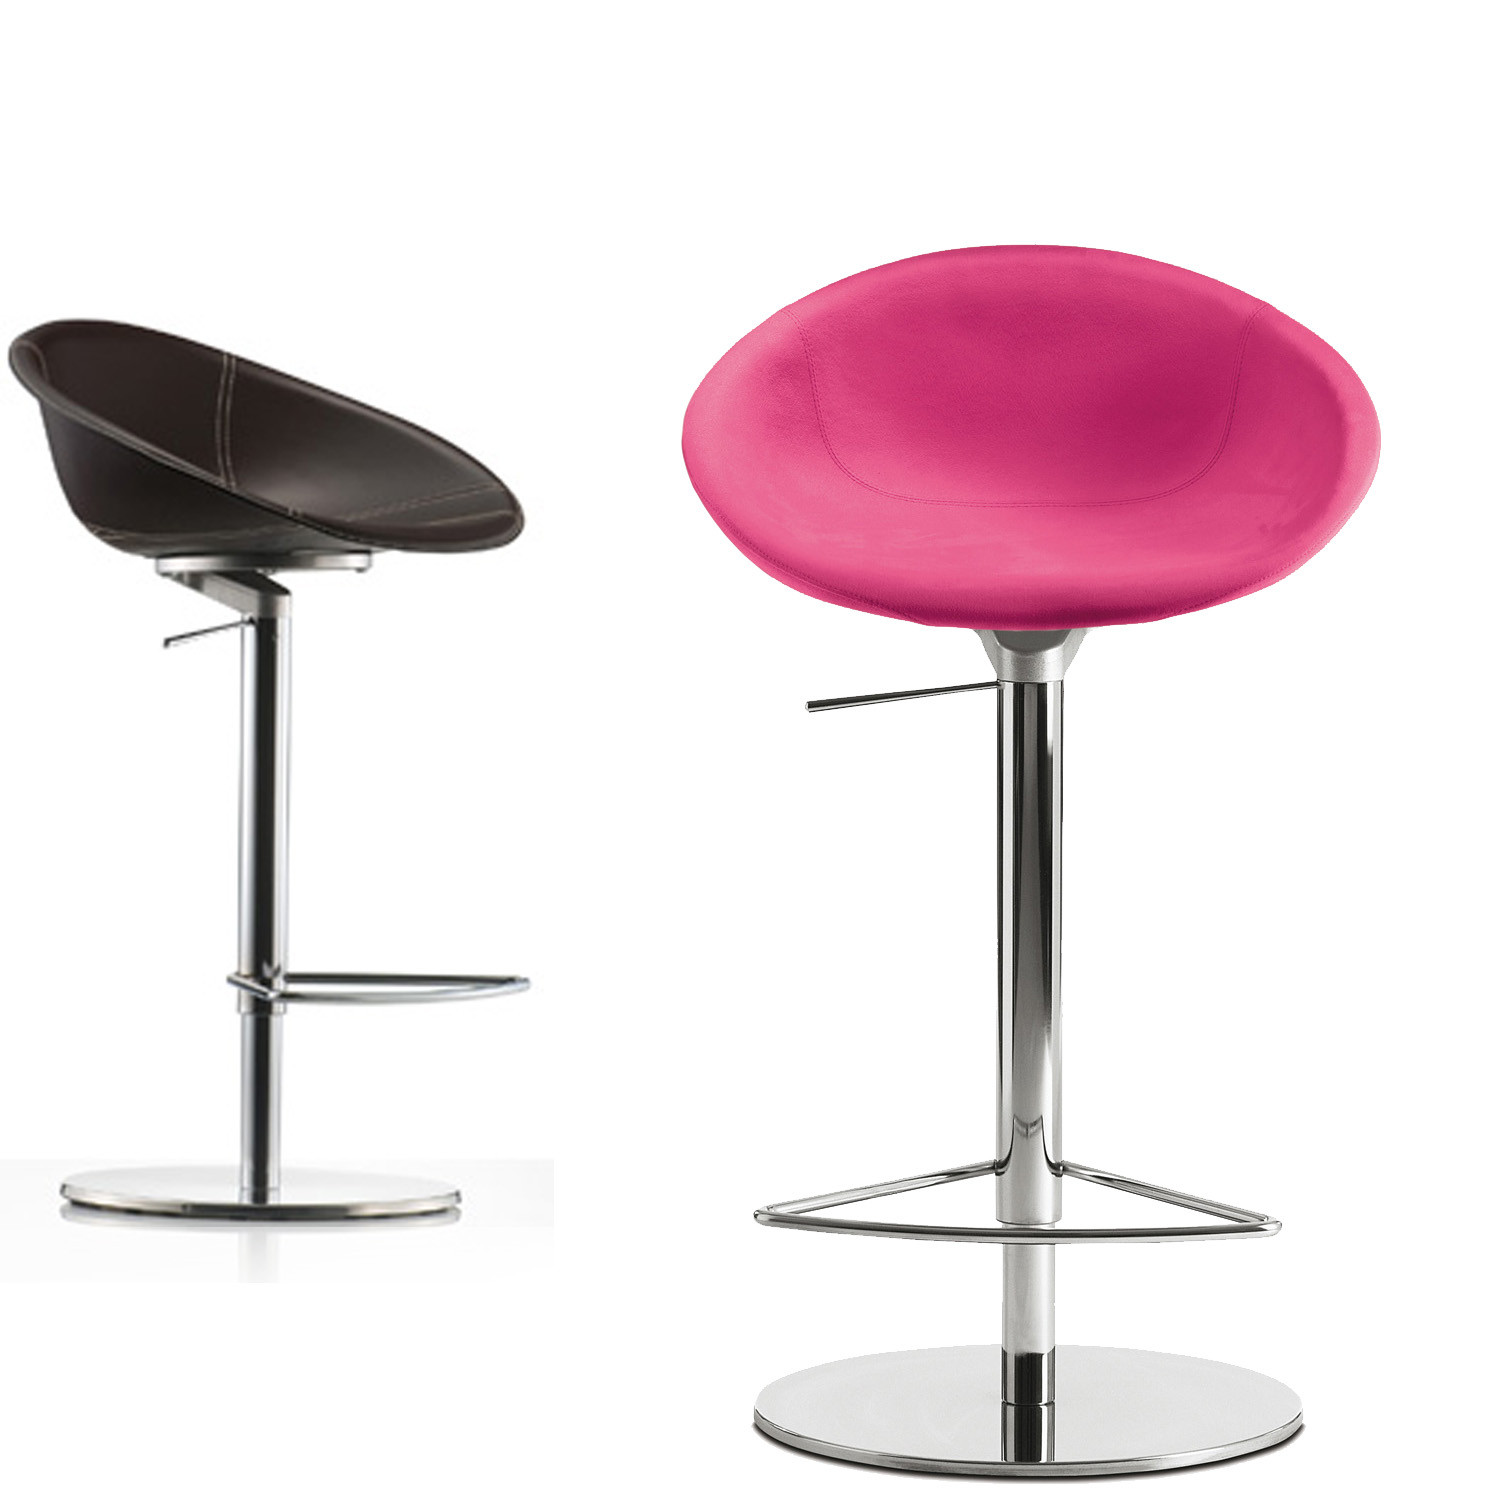 Contemporary Furniture And Stools: Après Furniture